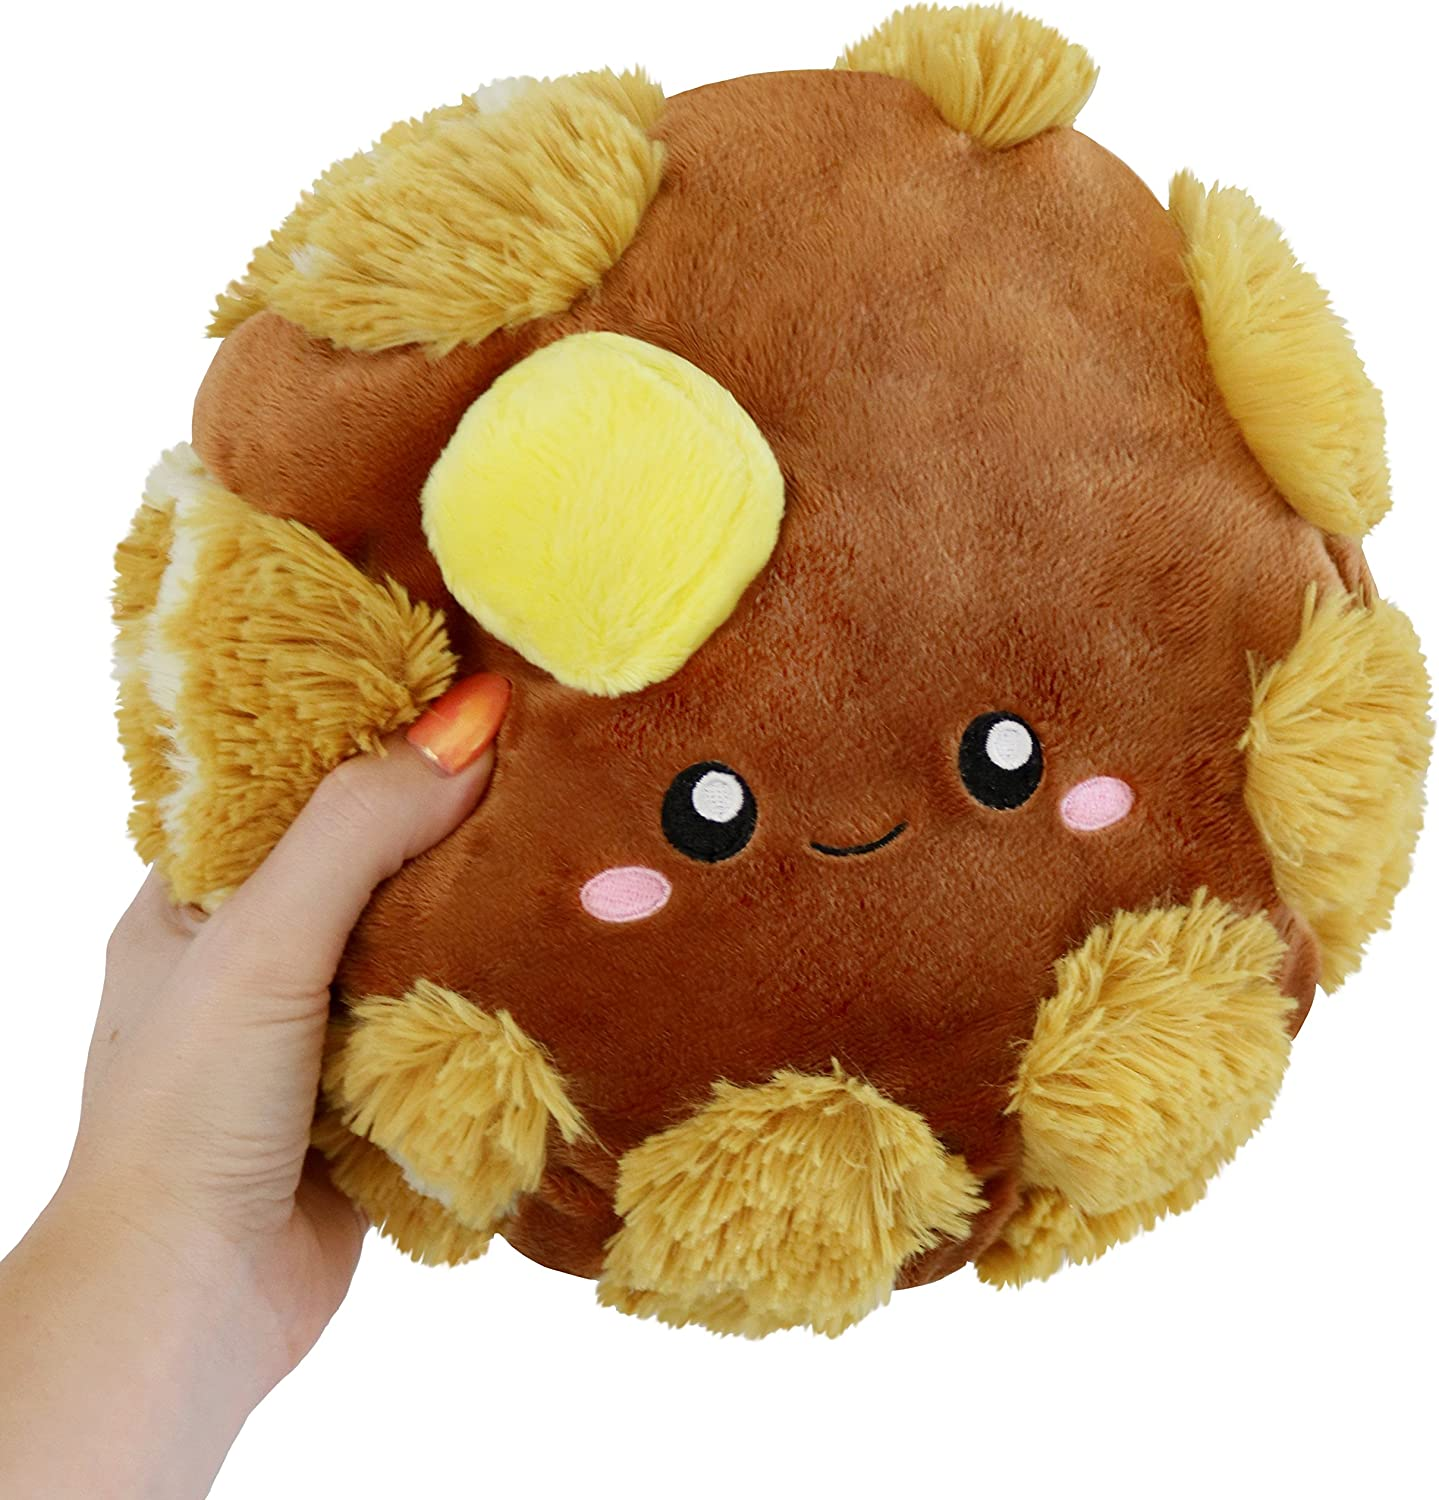 Squishable / Mini Comfort Food Pancakes Plush - 7""